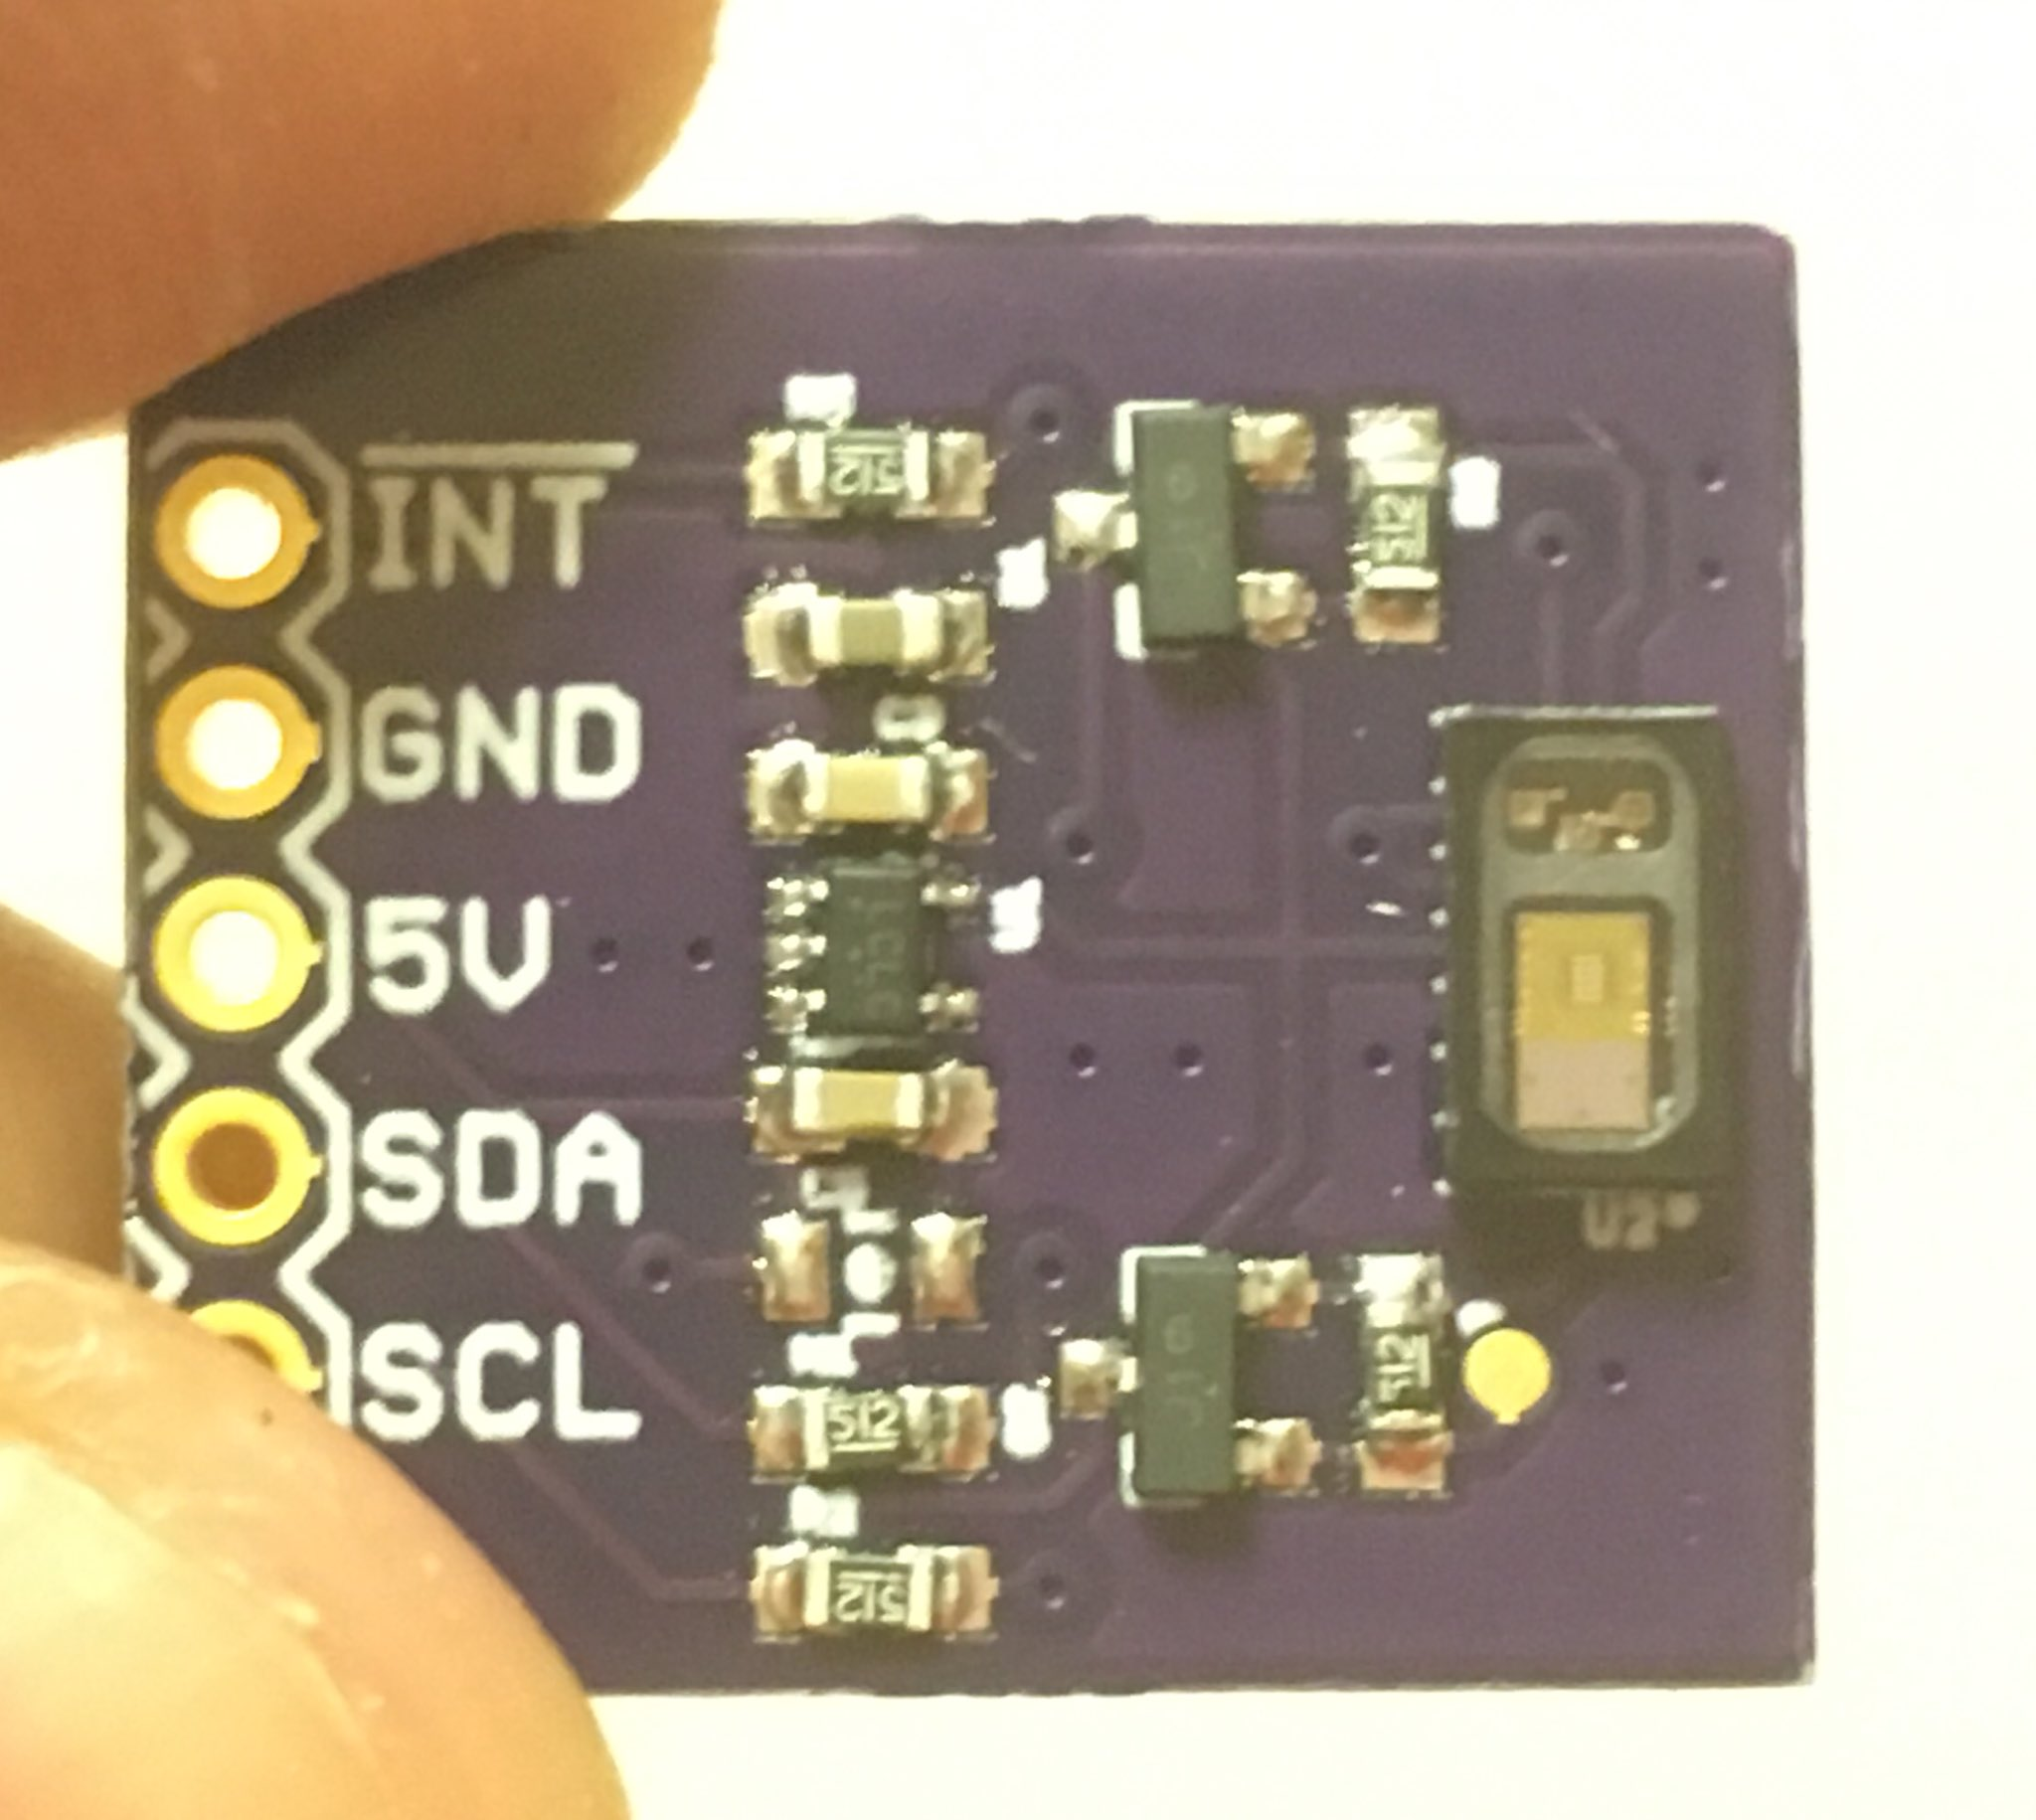 Research Sampath Sattis Grad Blog The Final Open House Reminder News Sparkfun Electronics Circuit Itself Simply Has Two Bidirectional Level Converters And A 18v Voltage Regulator Acting As Peripherals To Pulse Oximeter Chip